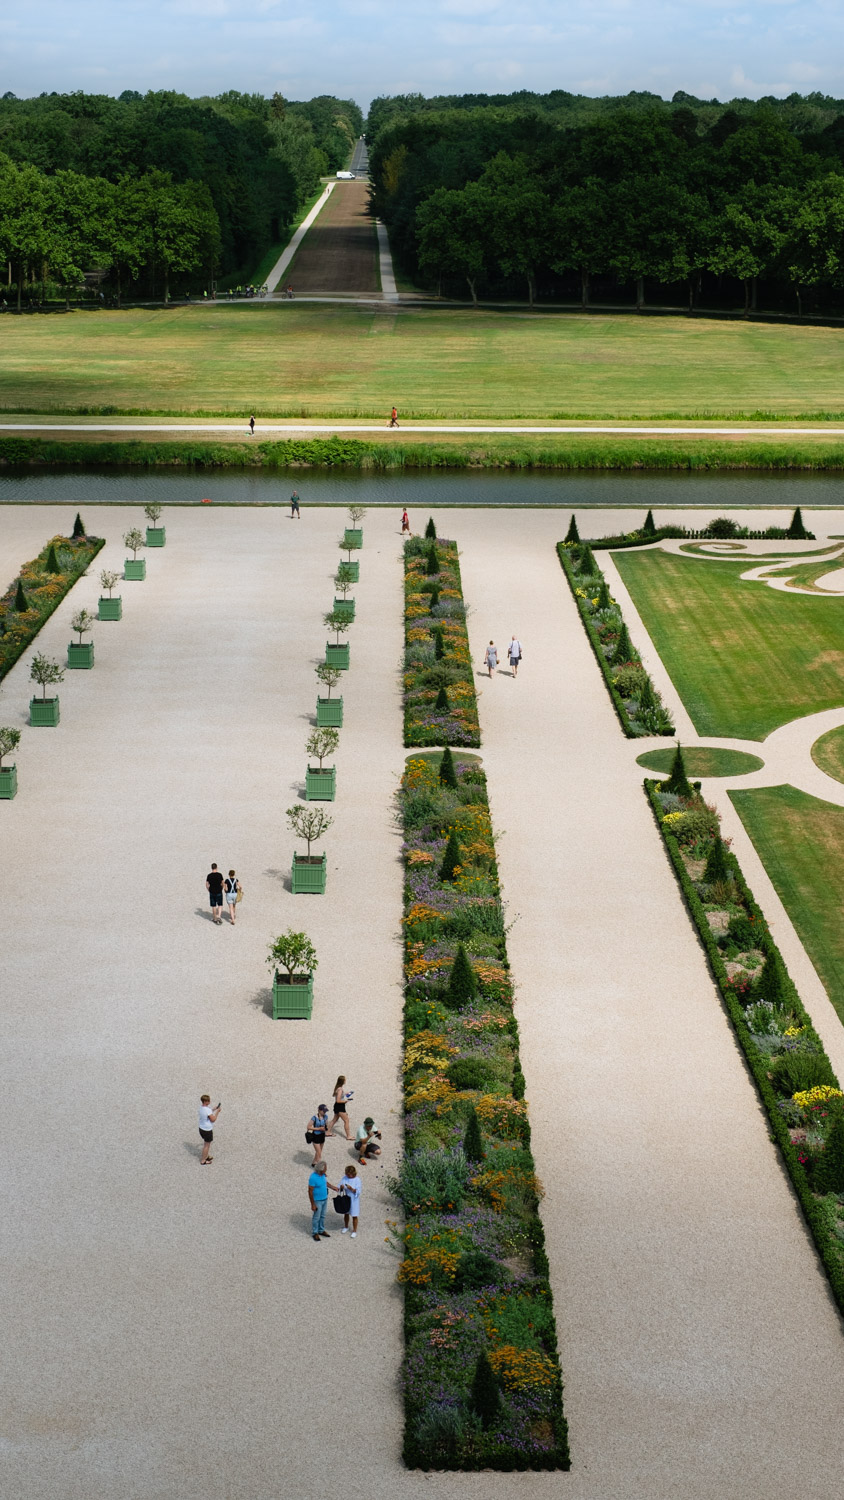 People walking through the French gardens of Chambord